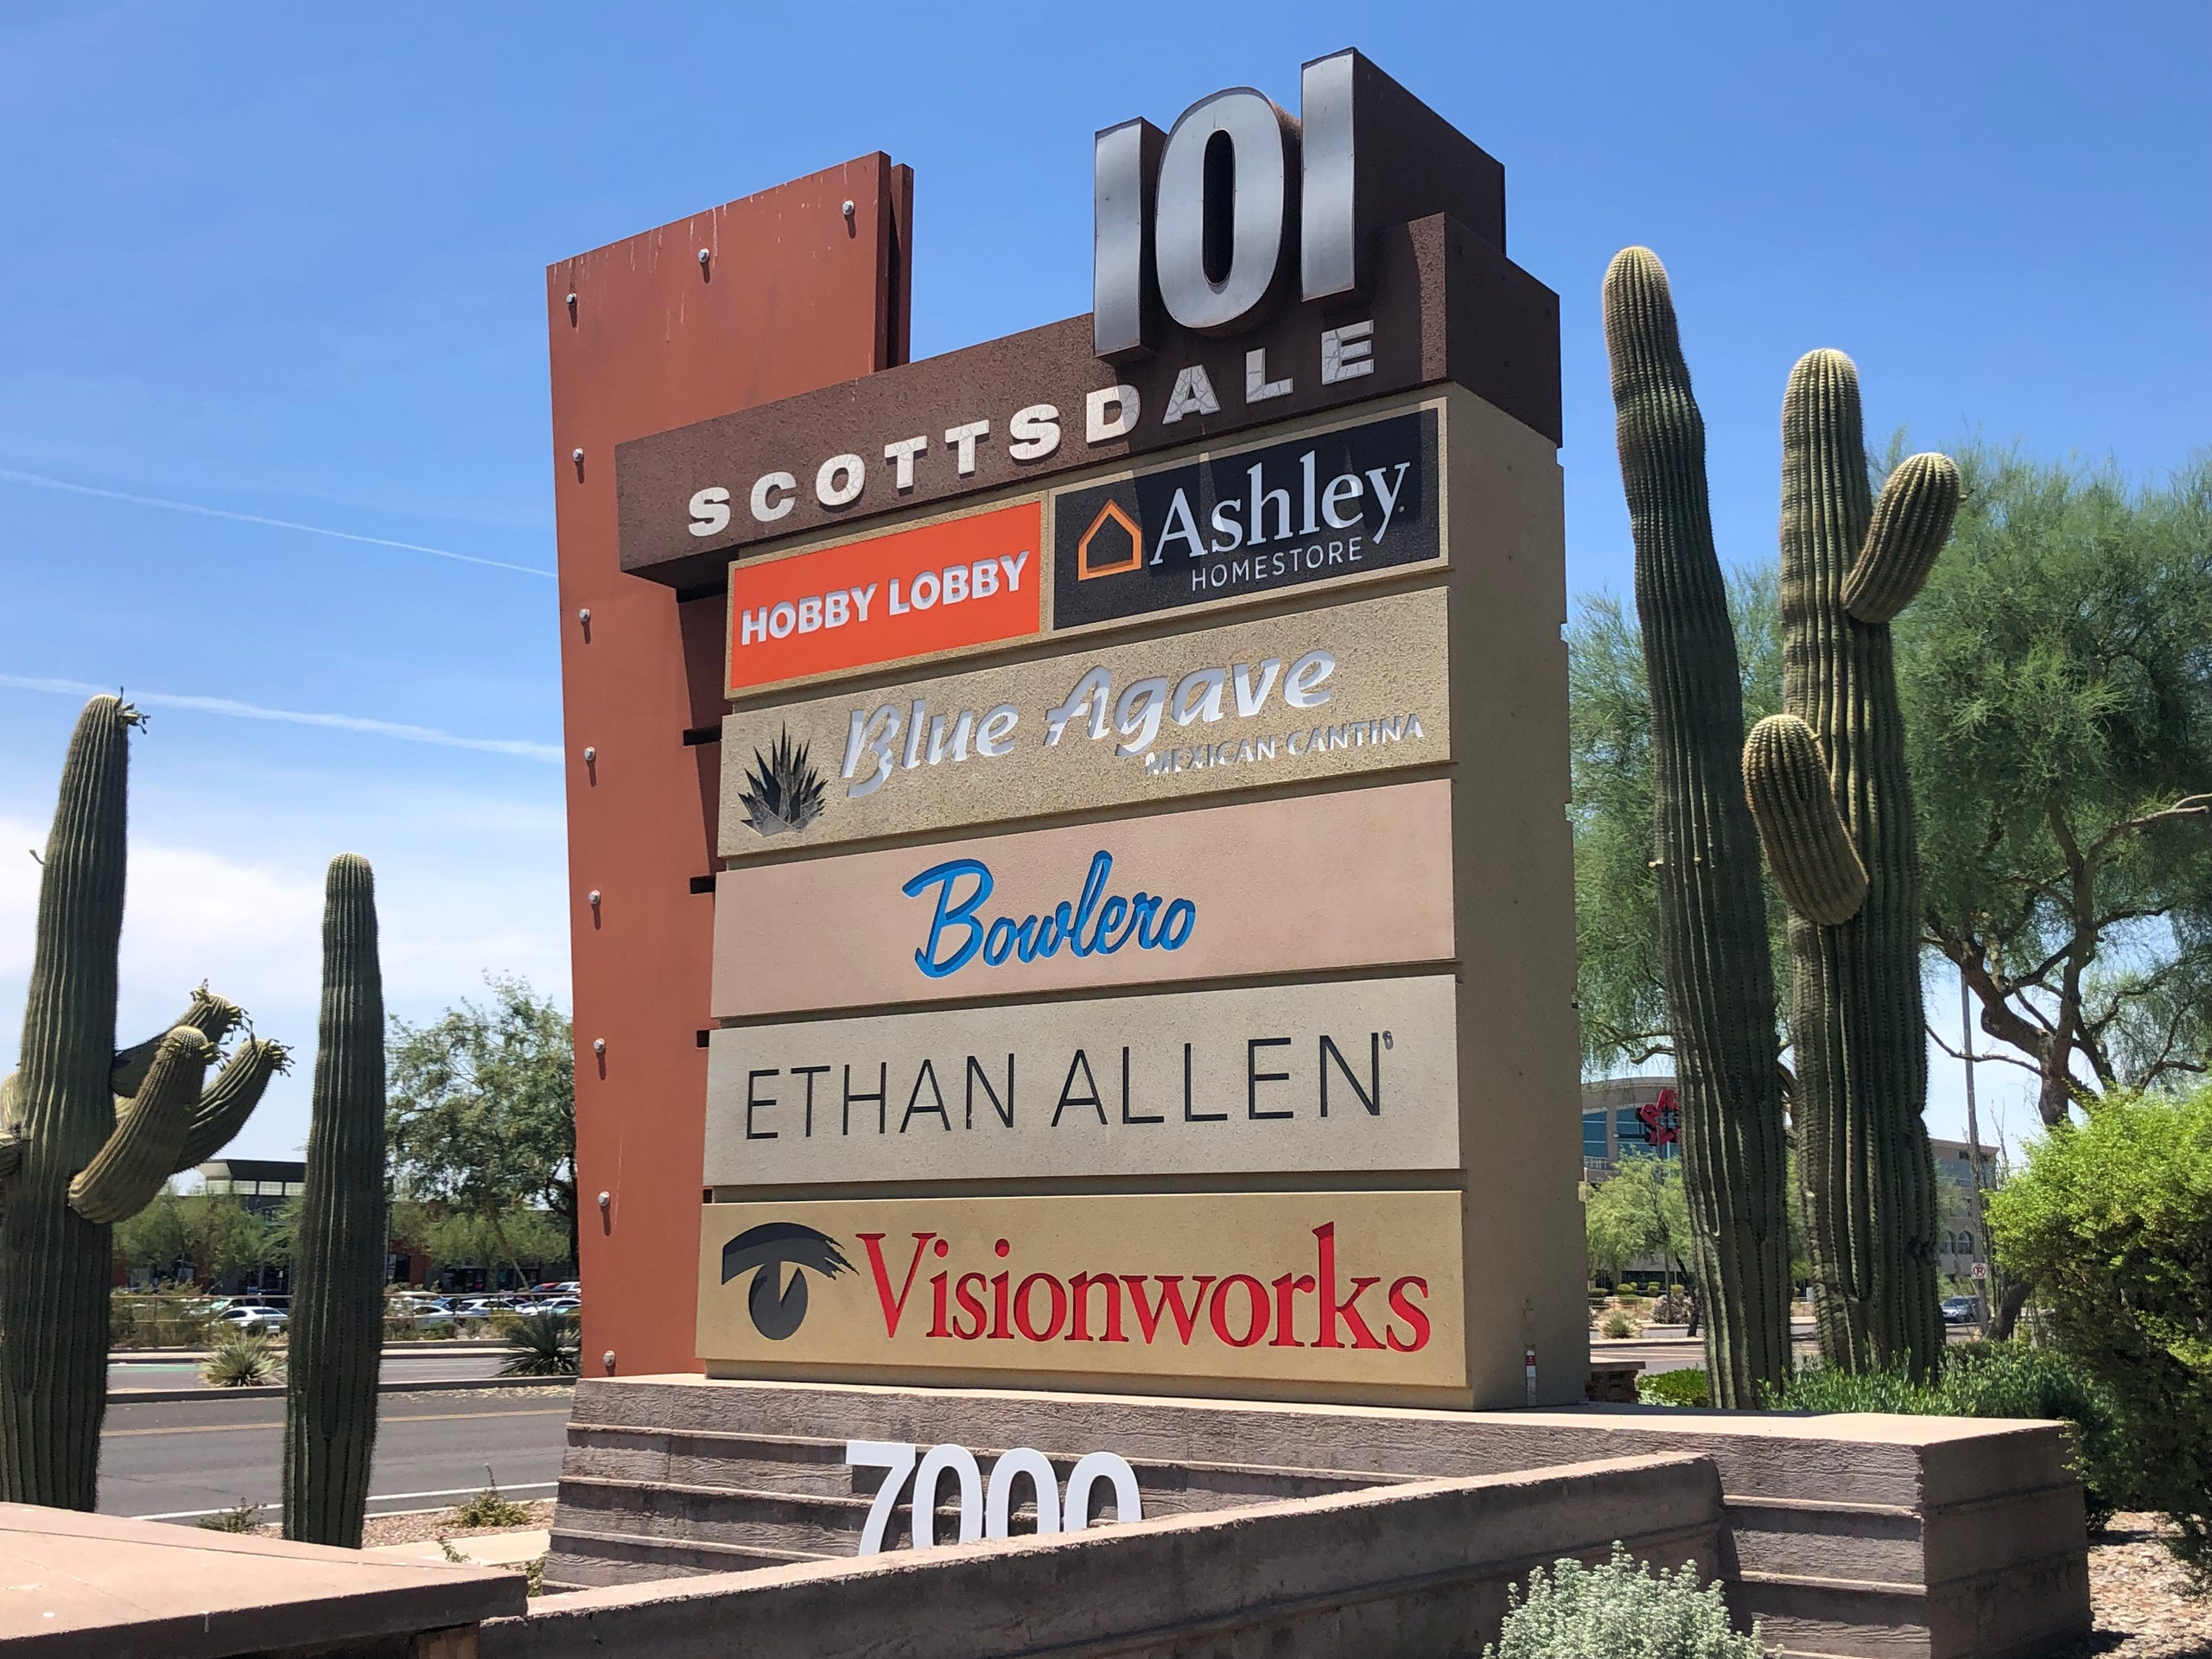 Restaurants coming to Scottsdale 101 Shopping Center in 2020